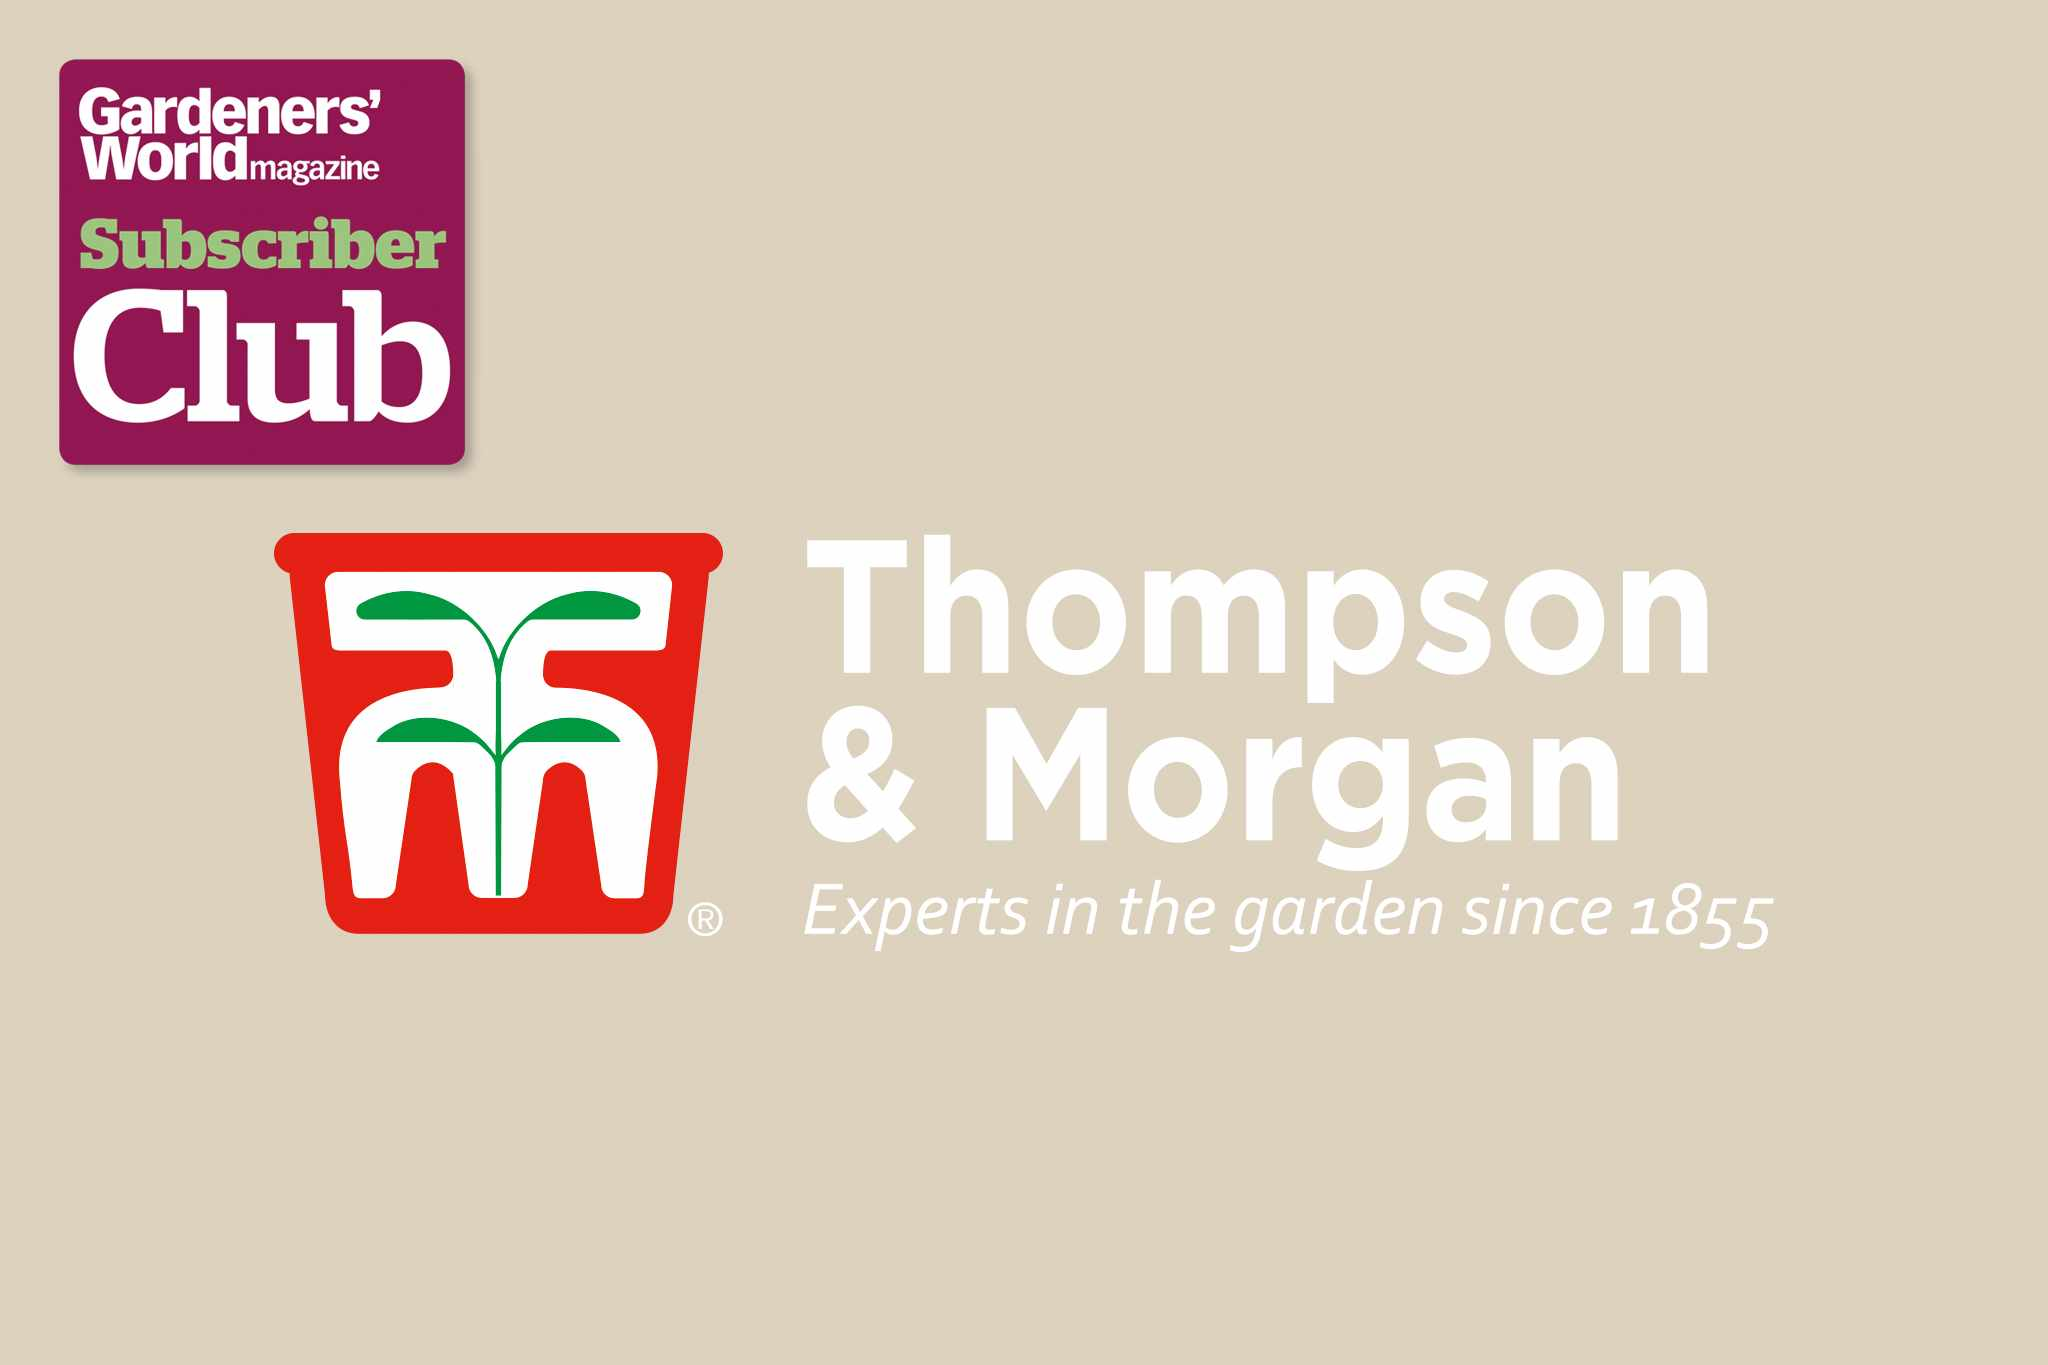 Thompson & Morgan BBC Gardeners' World Magazine Subscriber Club discount